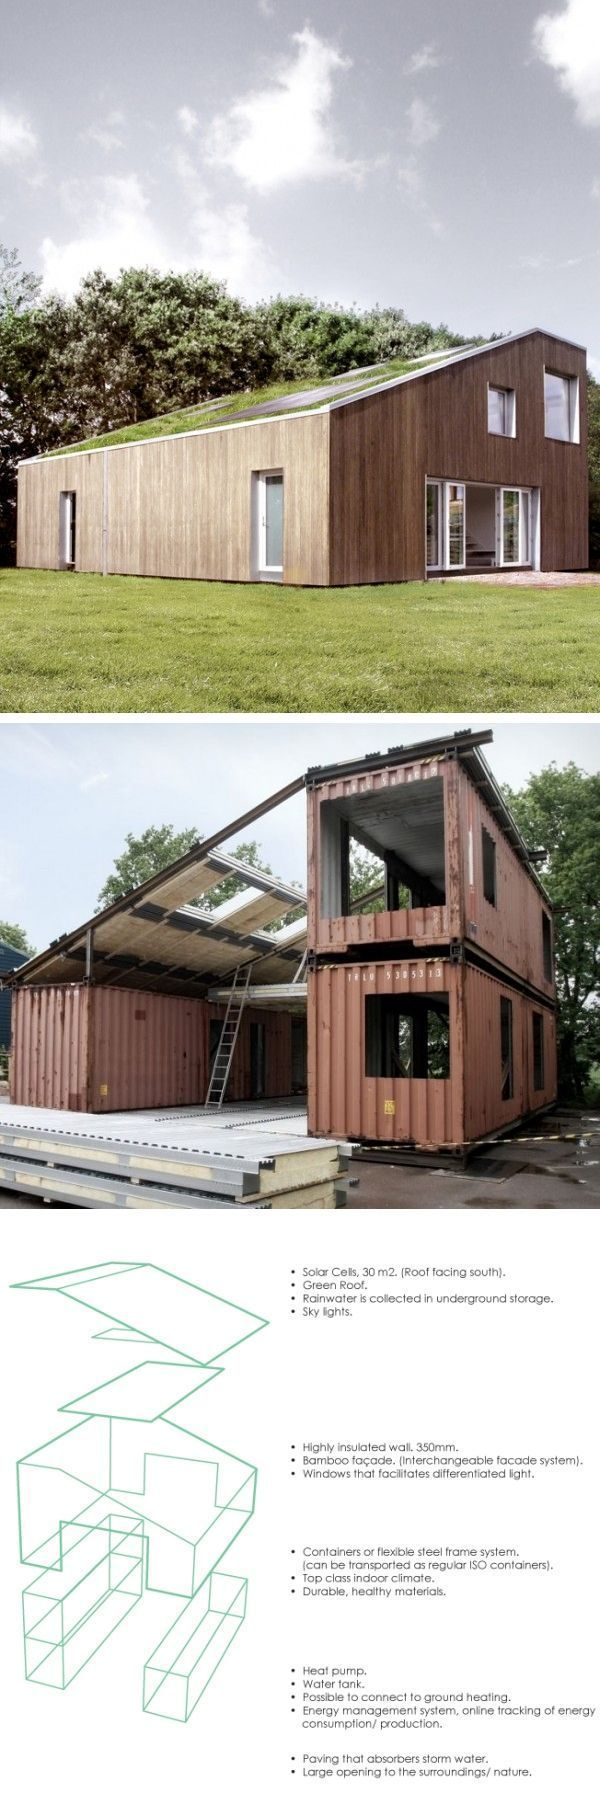 Interior Design For Shipping Container Homes? | | How To Build A Container Home - #build #container #design #homes #interior #shipping - #HomeDecoratingIdeas